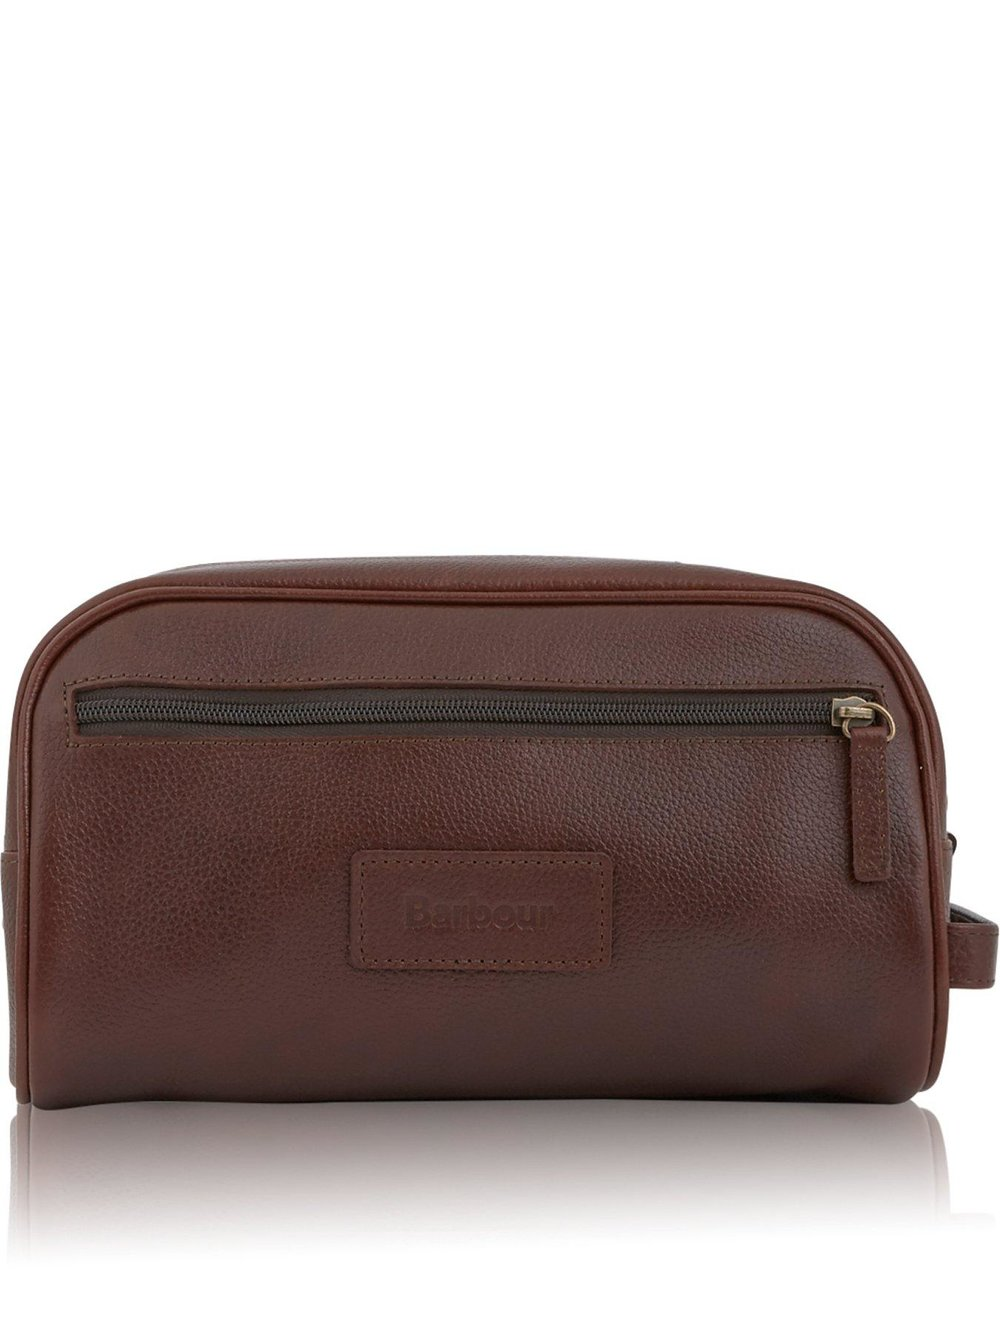 Barbour Leather Washbag £49.00  at Very Exclusive